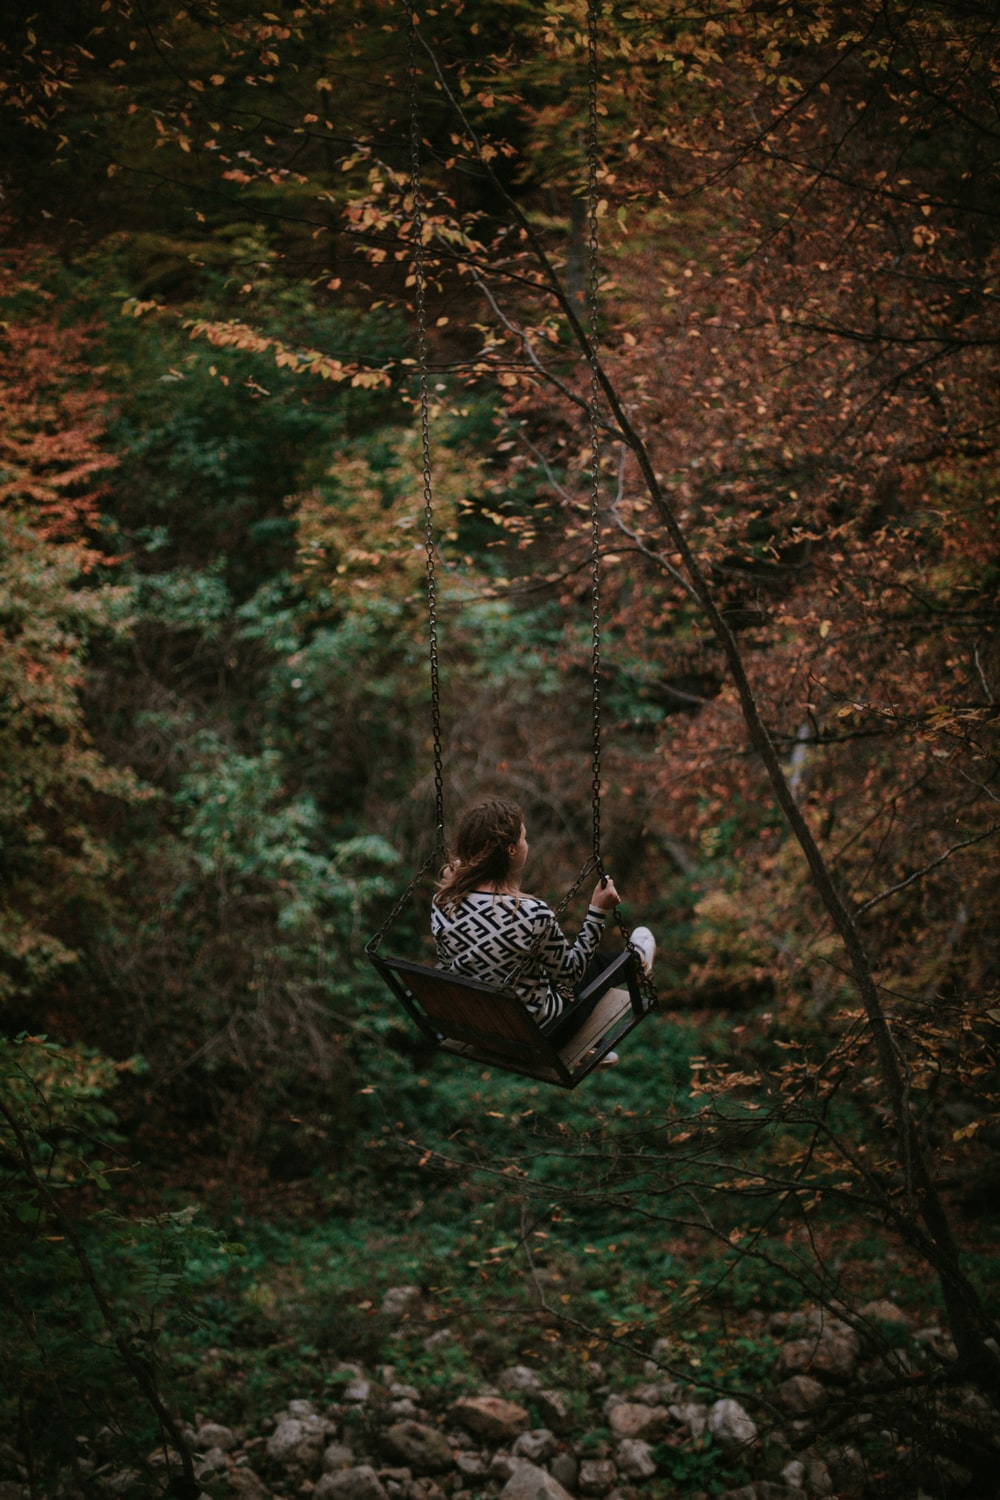 girl on swing surrounded by trees